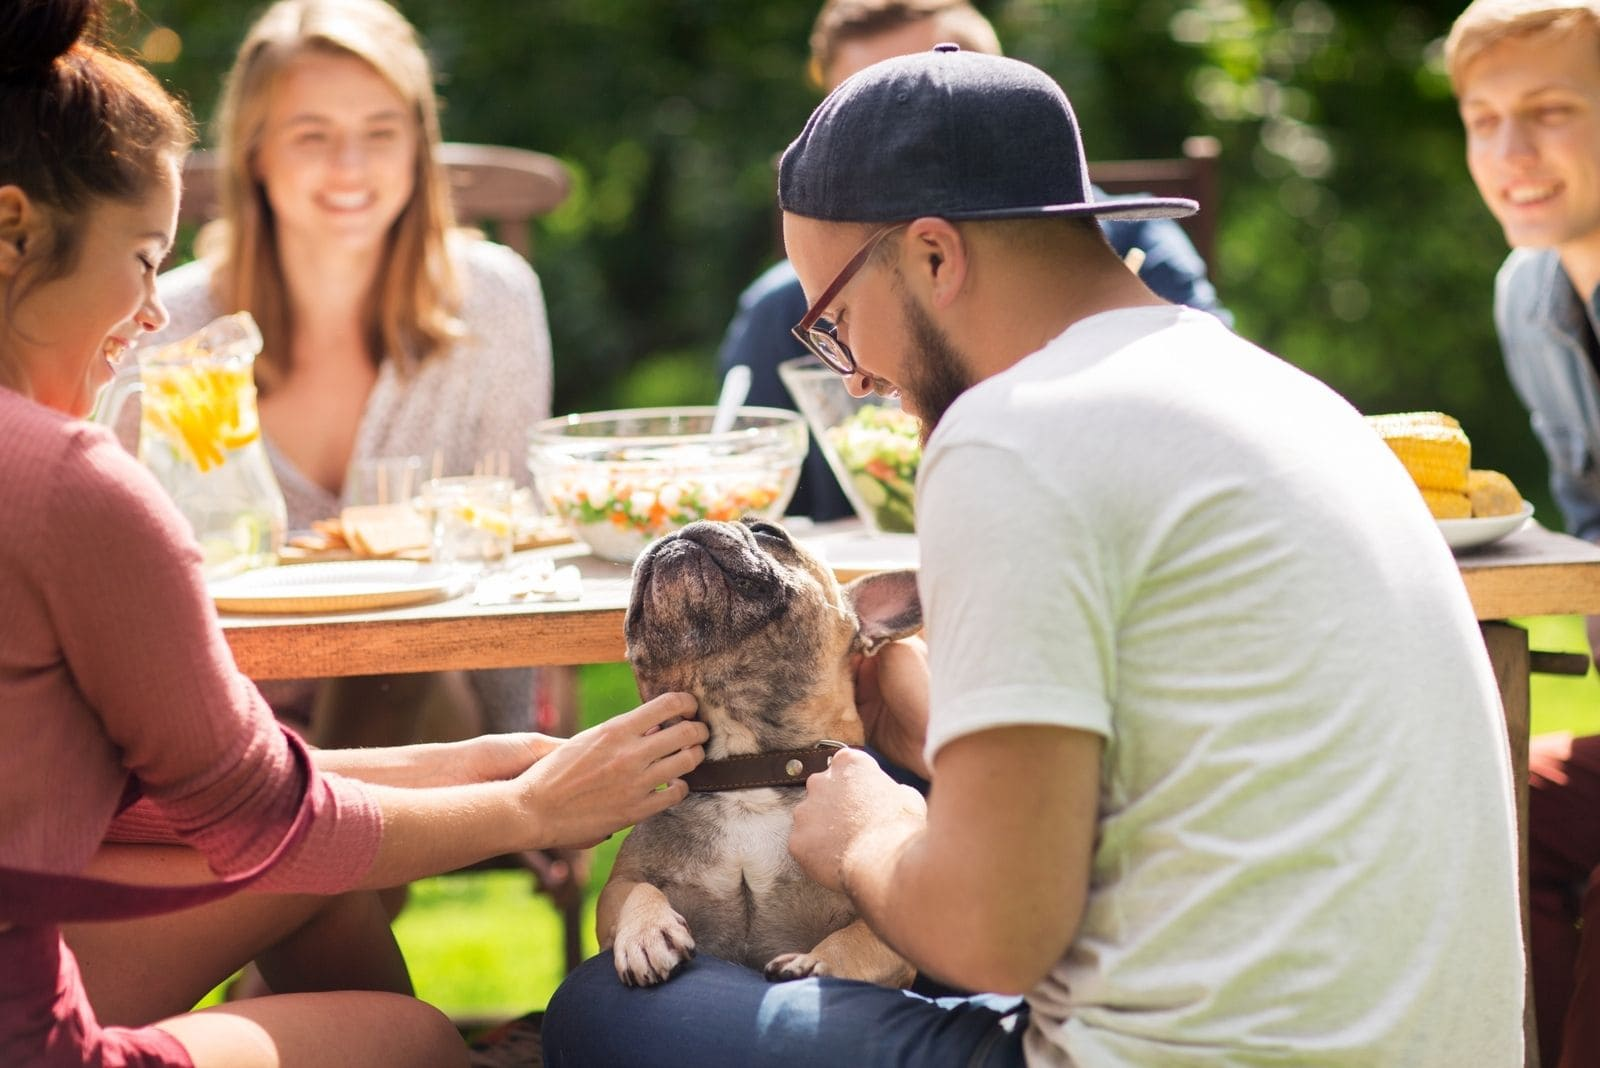 leisure holiday celebration of friends and family eating outdoors and playing with dog